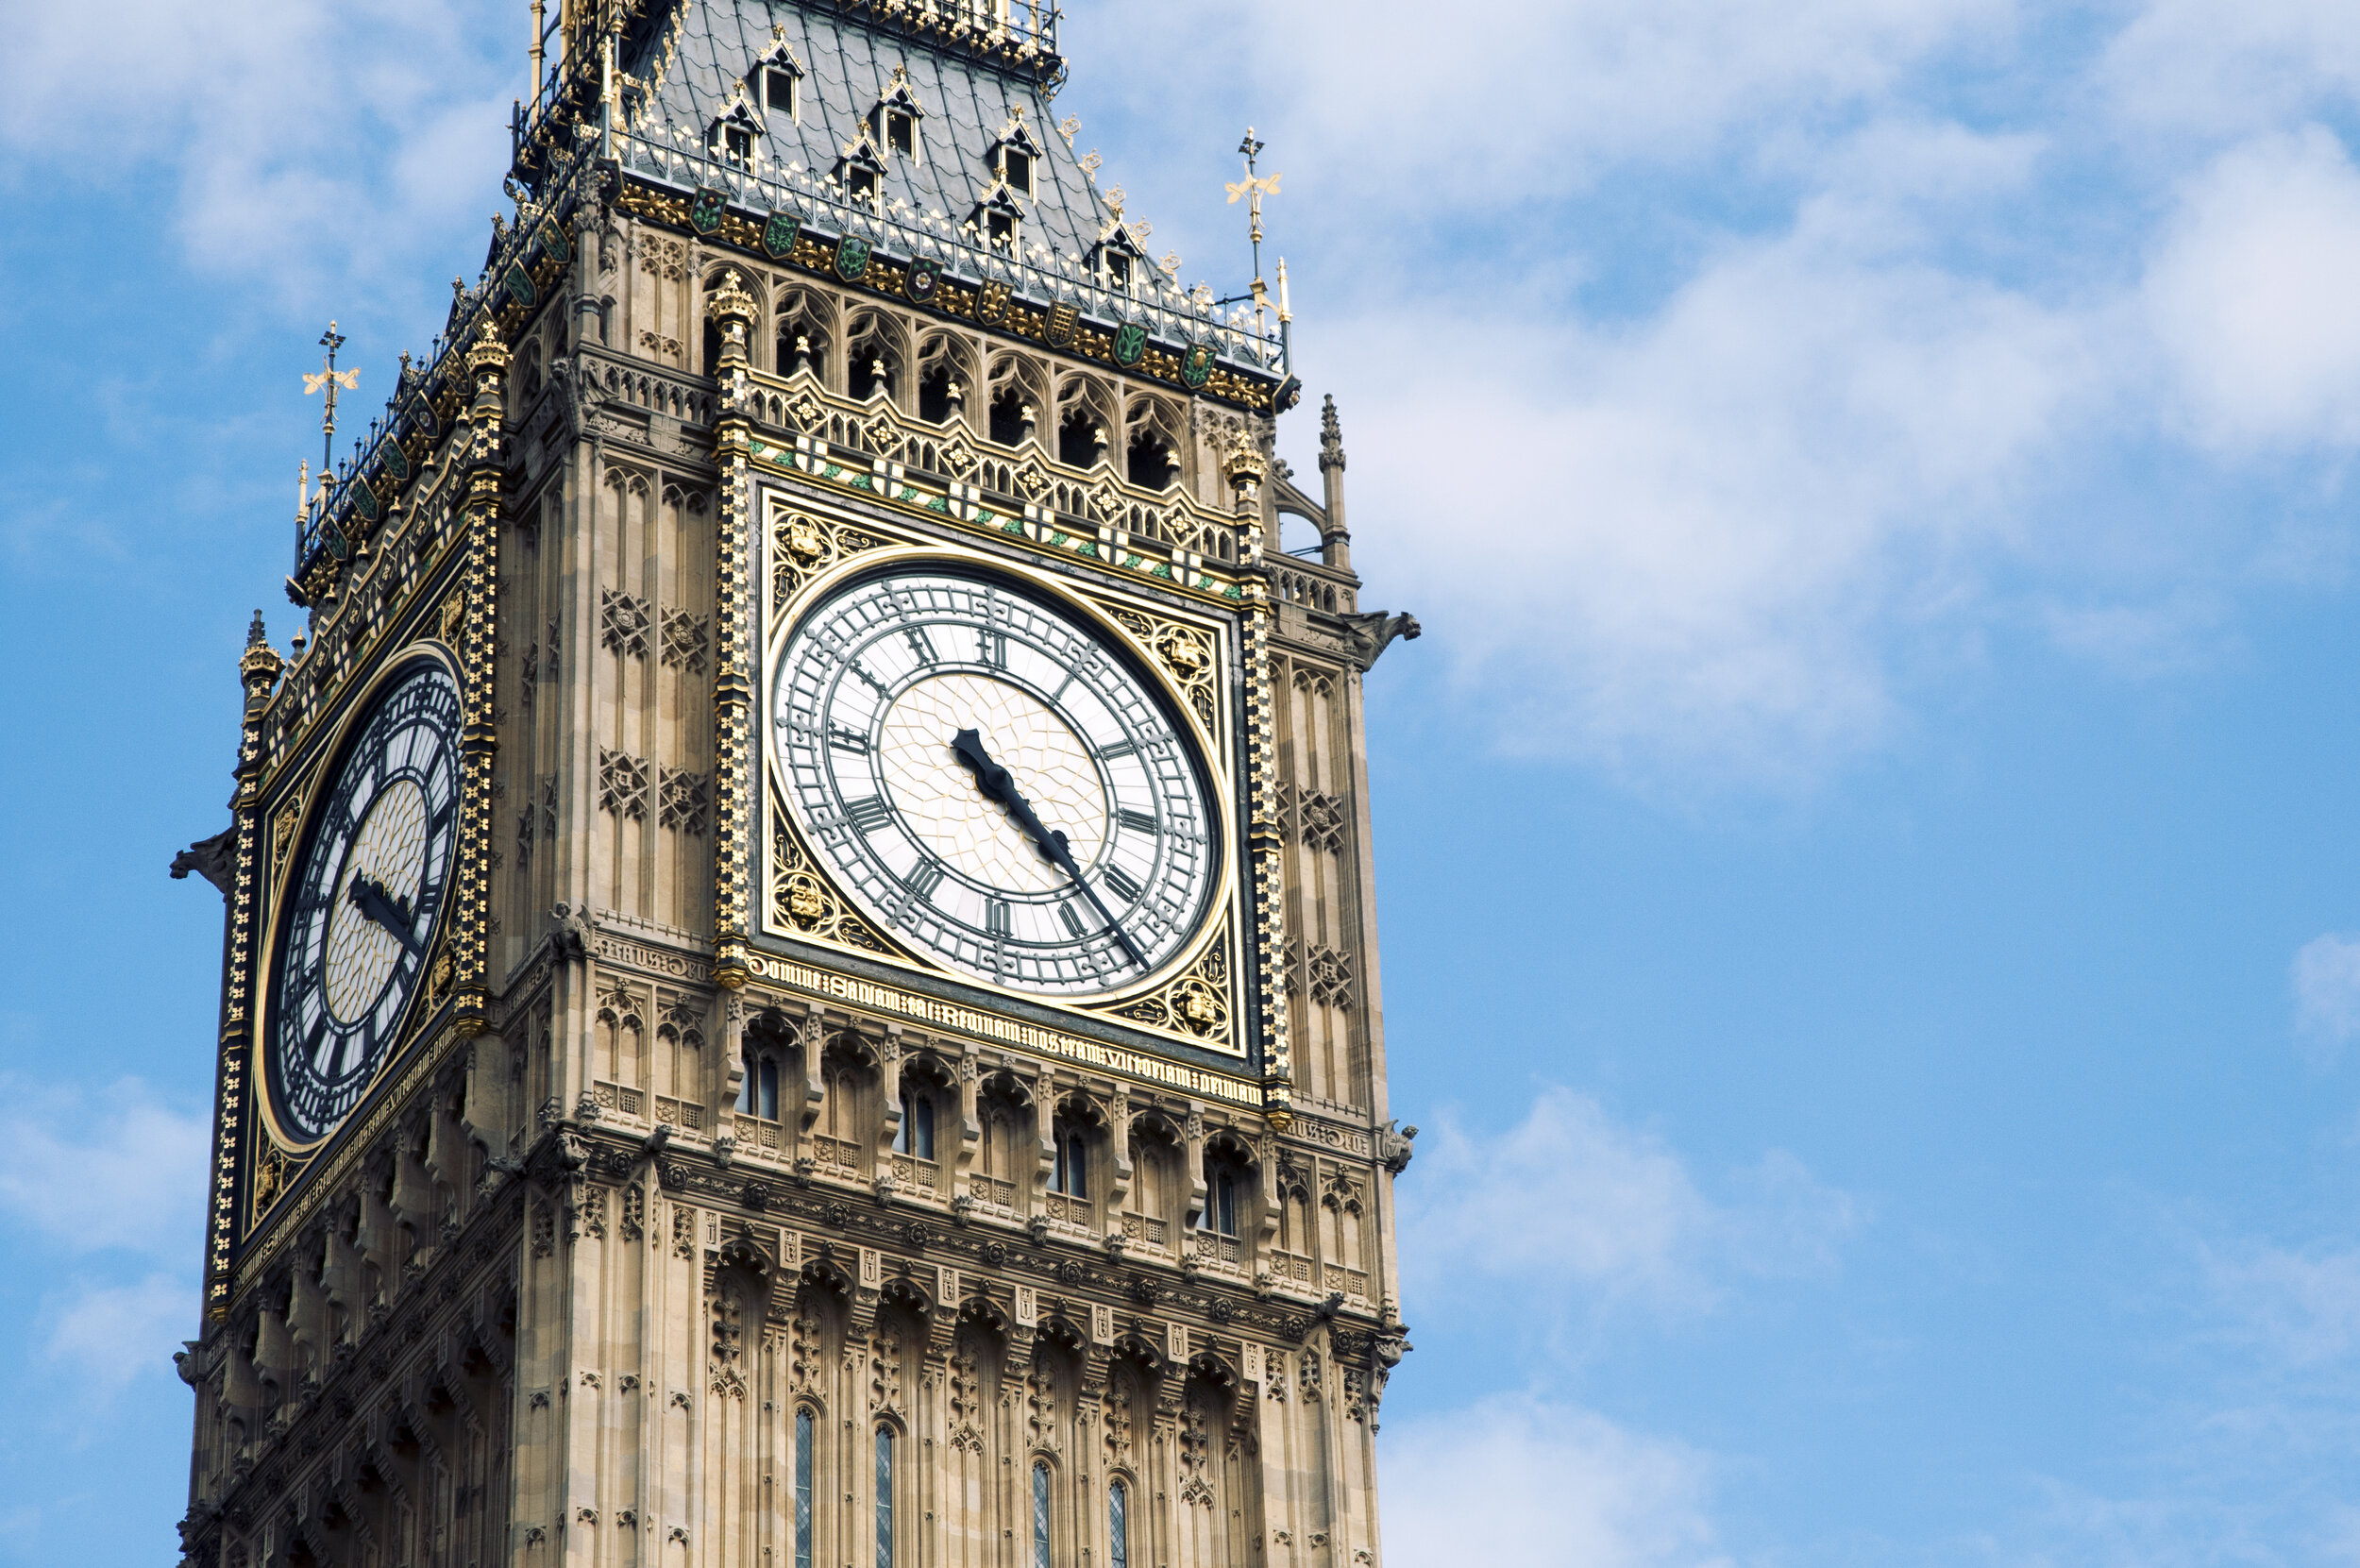 The top of Big Ben stands in front of a blue sky.